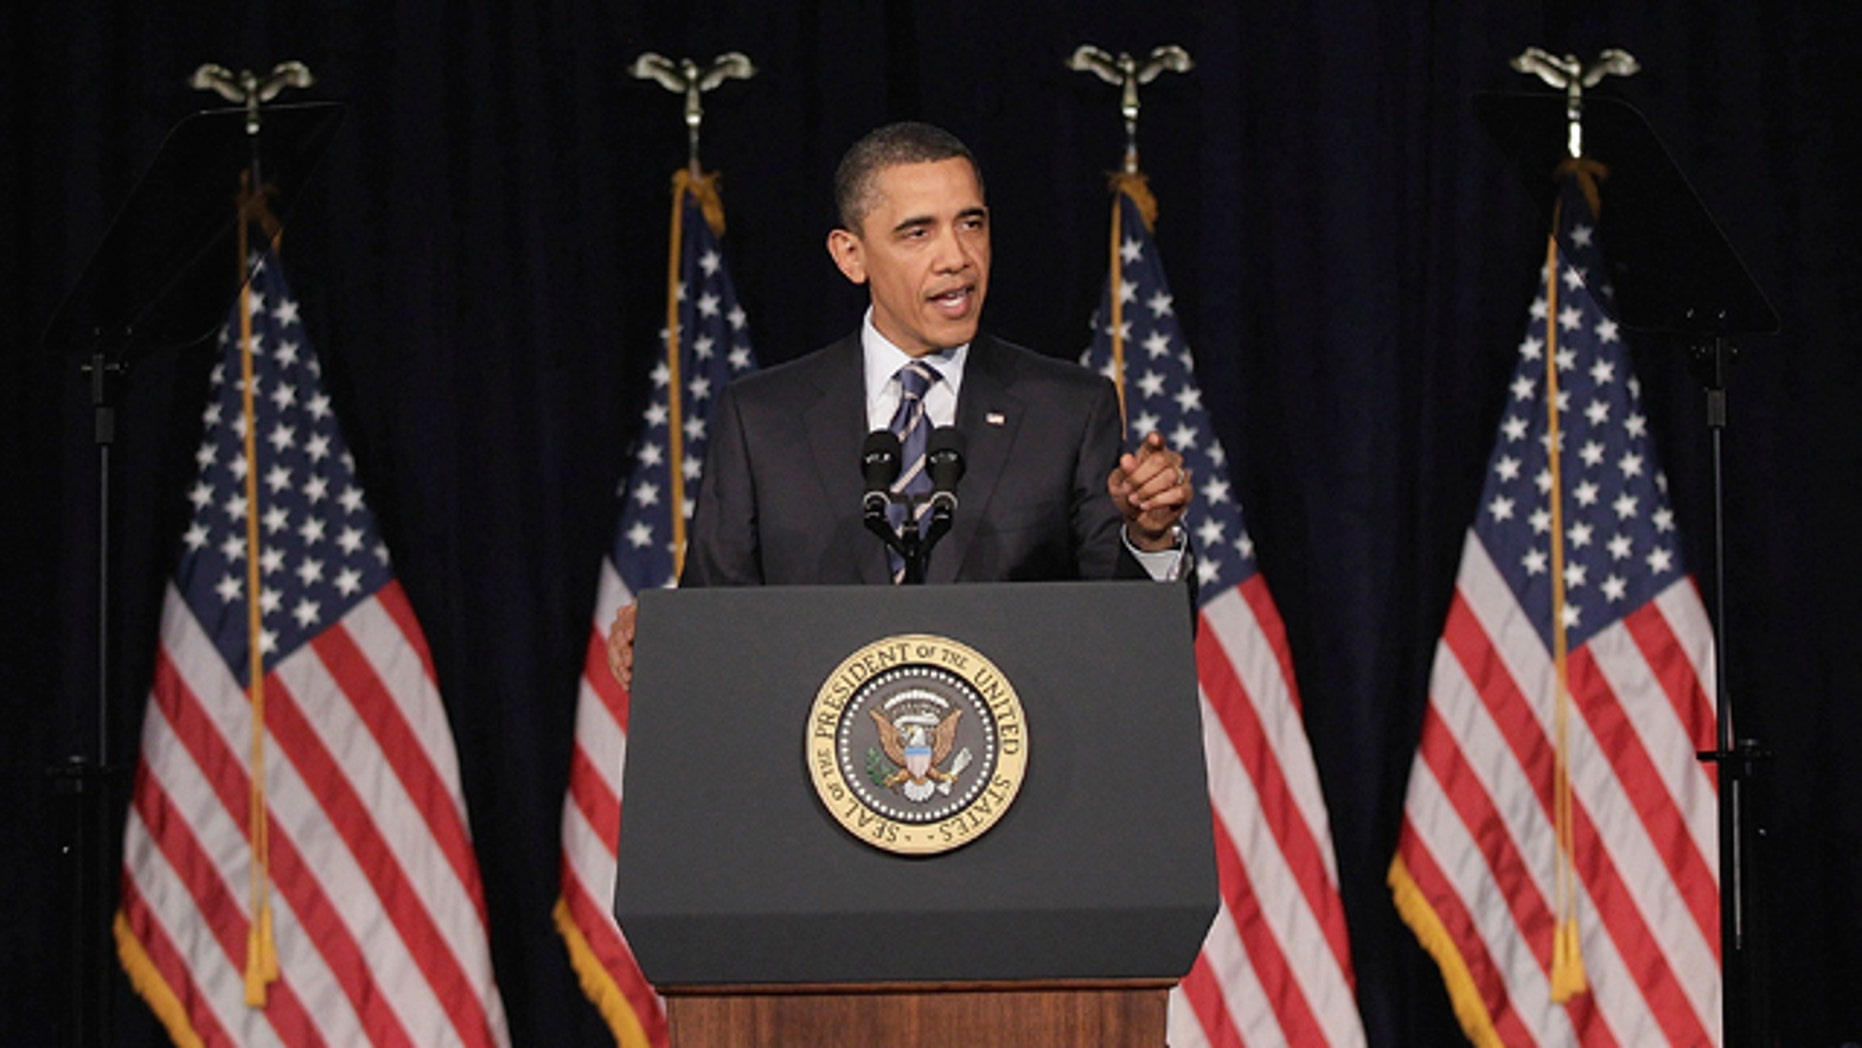 April 13: President Barack Obama outlines his fiscal policy during an address at George Washington University in Washington.